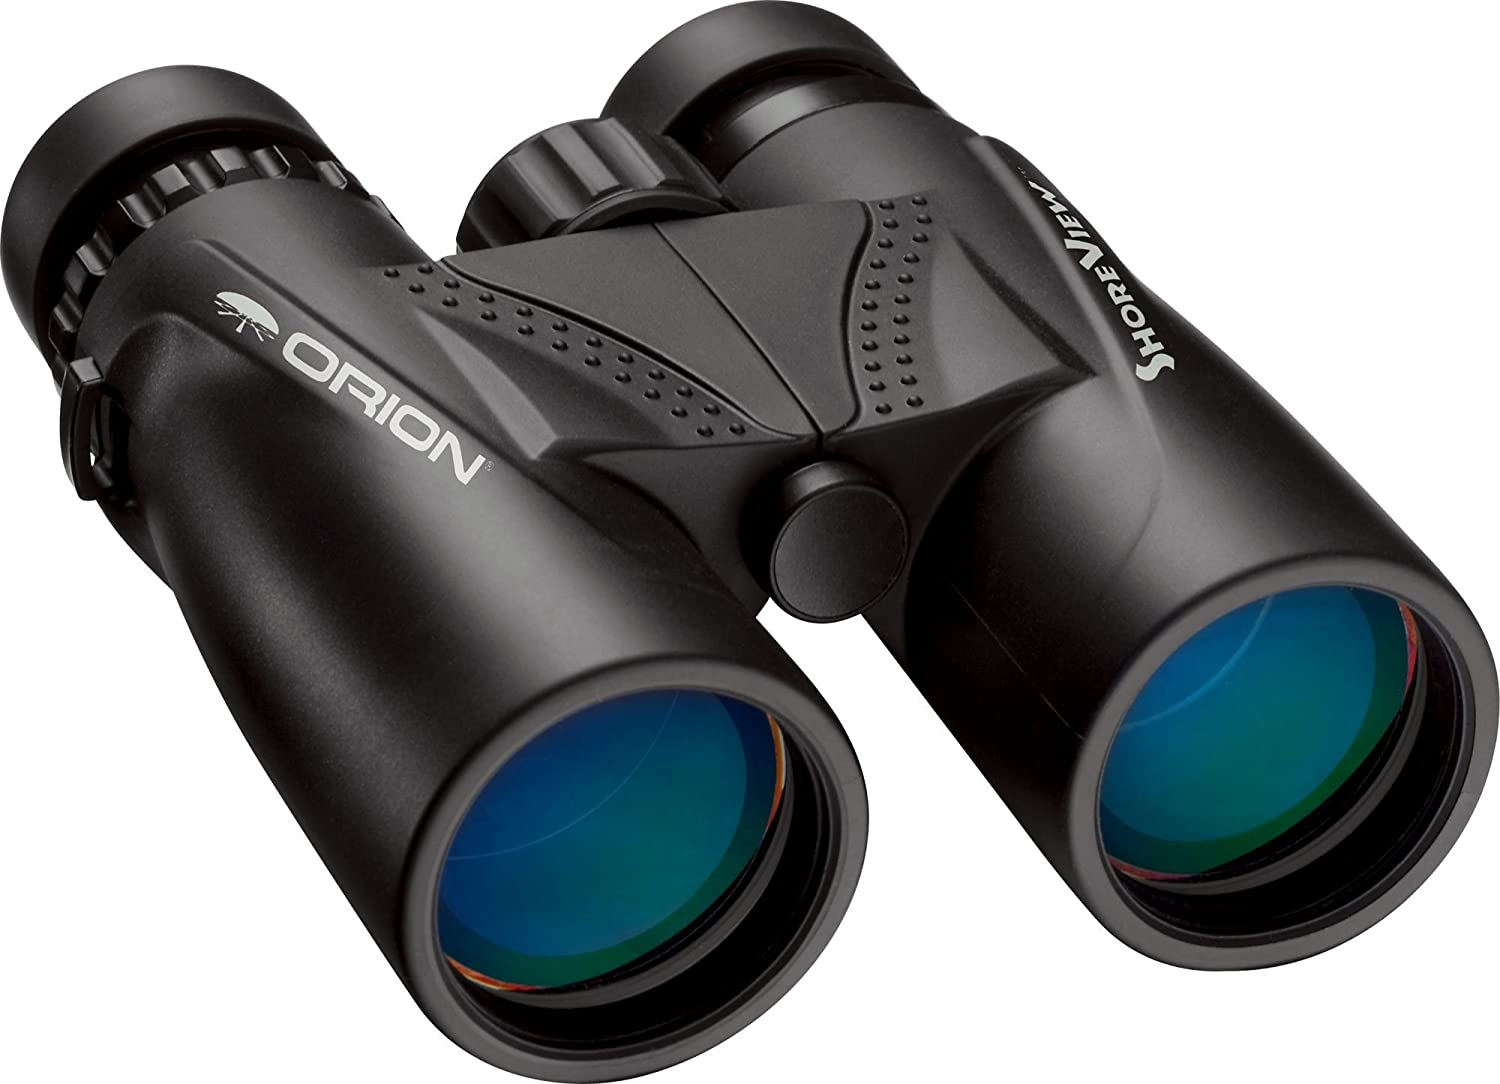 Orion 09471 ShoreView 8 x 42 Waterproof Binoculars Black